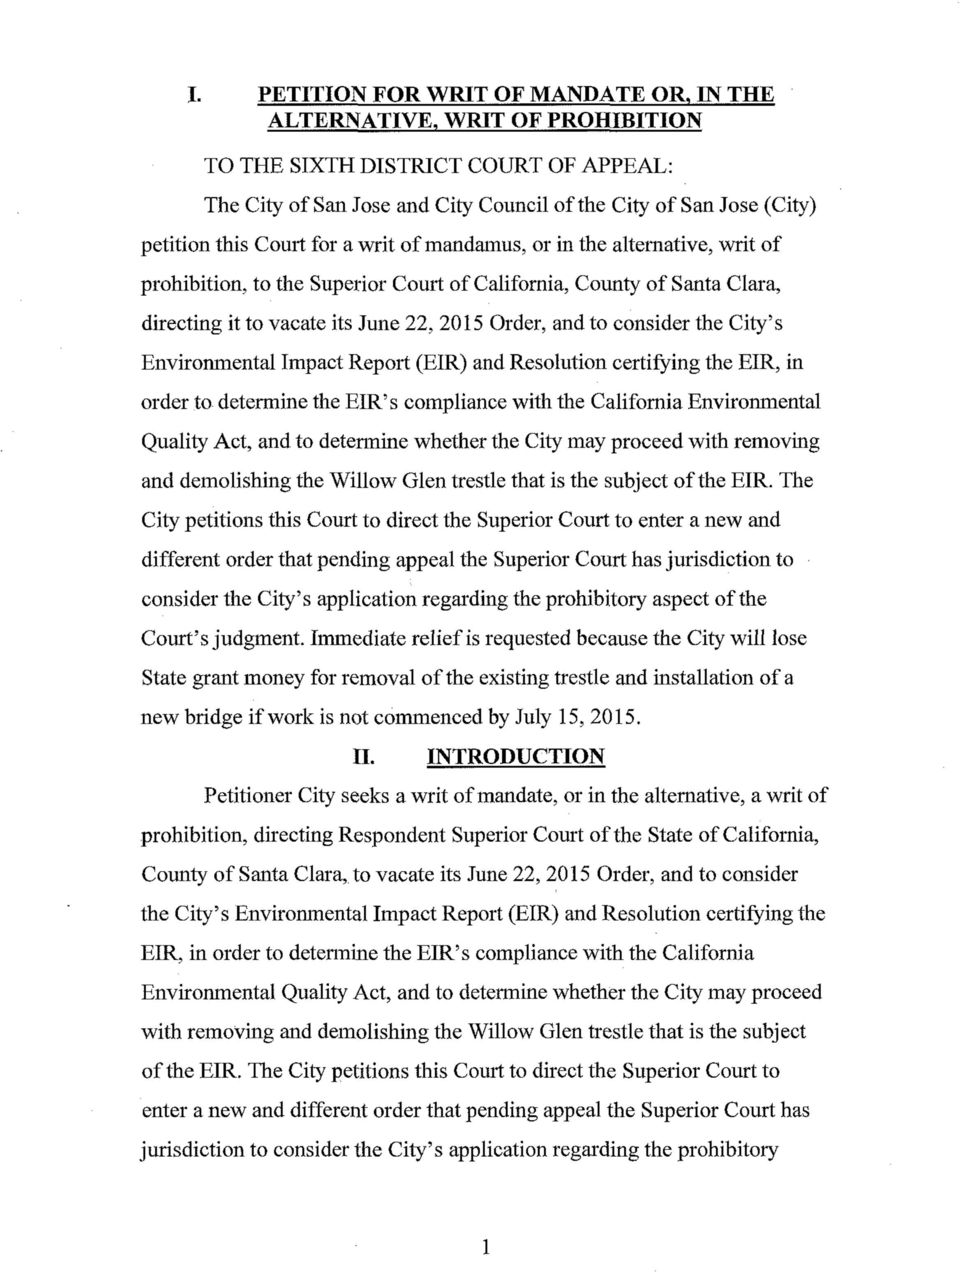 the alternative, writ of prohibition, to the Superior Court of California, County of Santa Clara, directing it to vacate its June 22, 2015 Order, and to consider the City's Environmental Impact